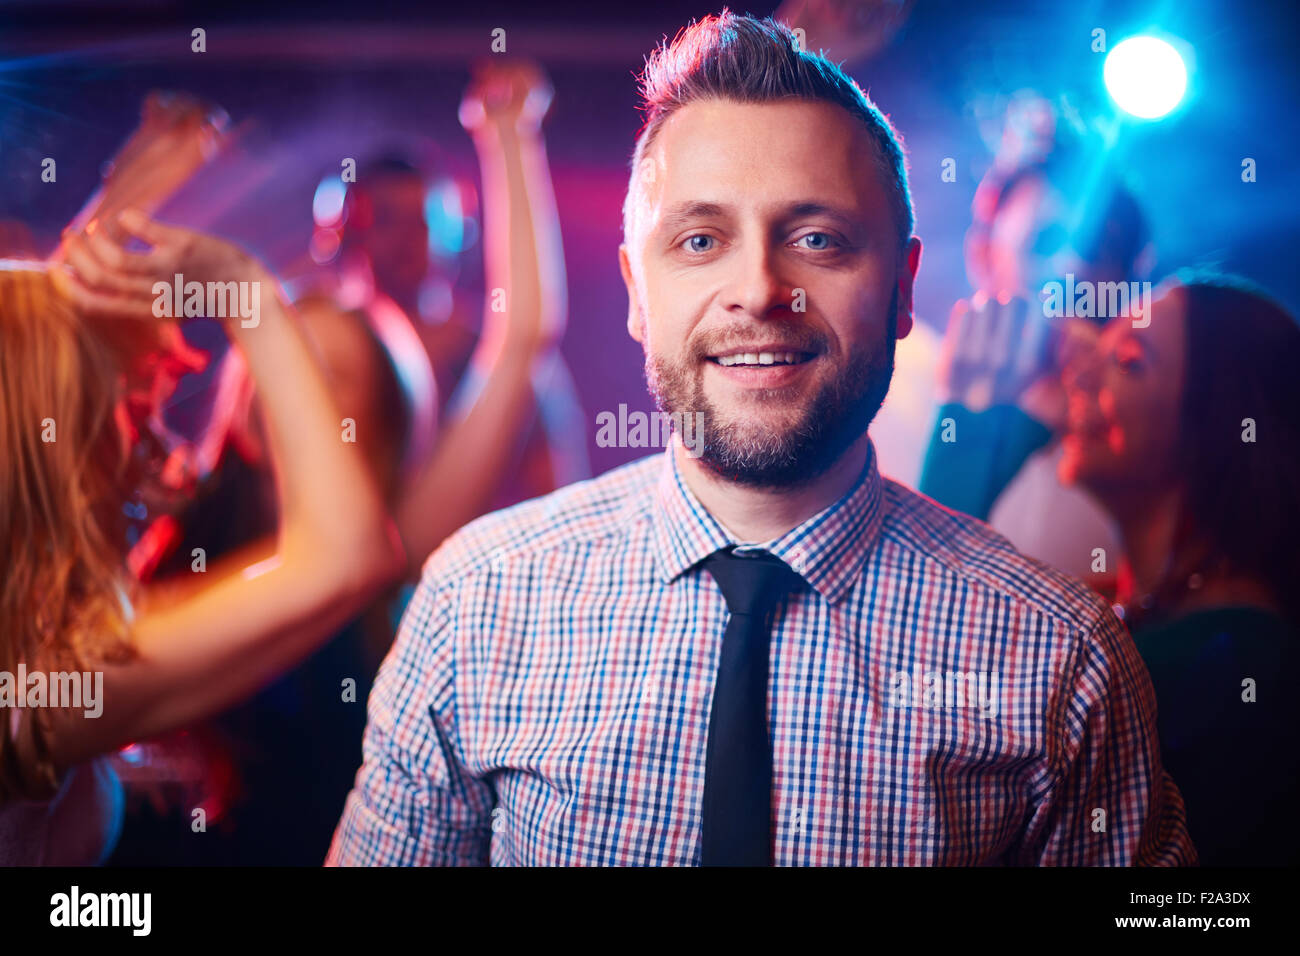 Man at party - Stock Image